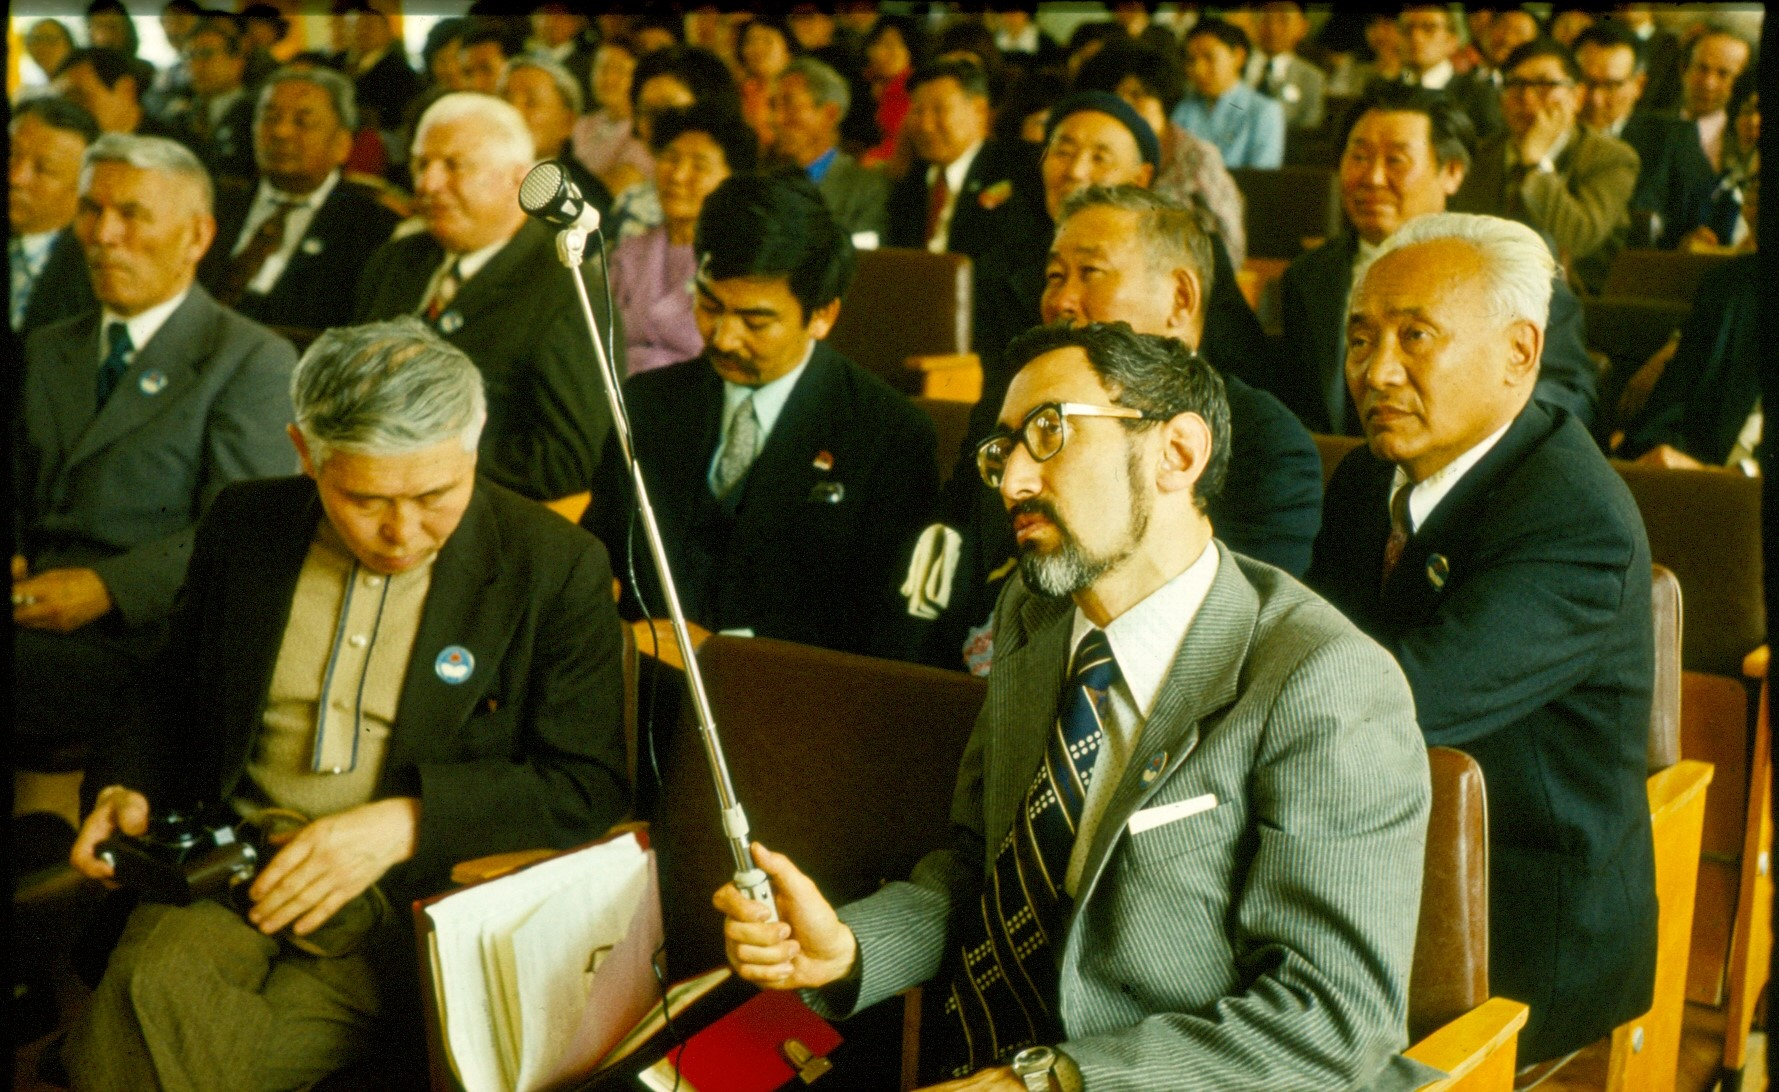 Dressed in a grey suit and holding a microphone on an extension stick, Eduard Alekseyev sits in a crowded auditorium. The date and location of this photograph are unknown.